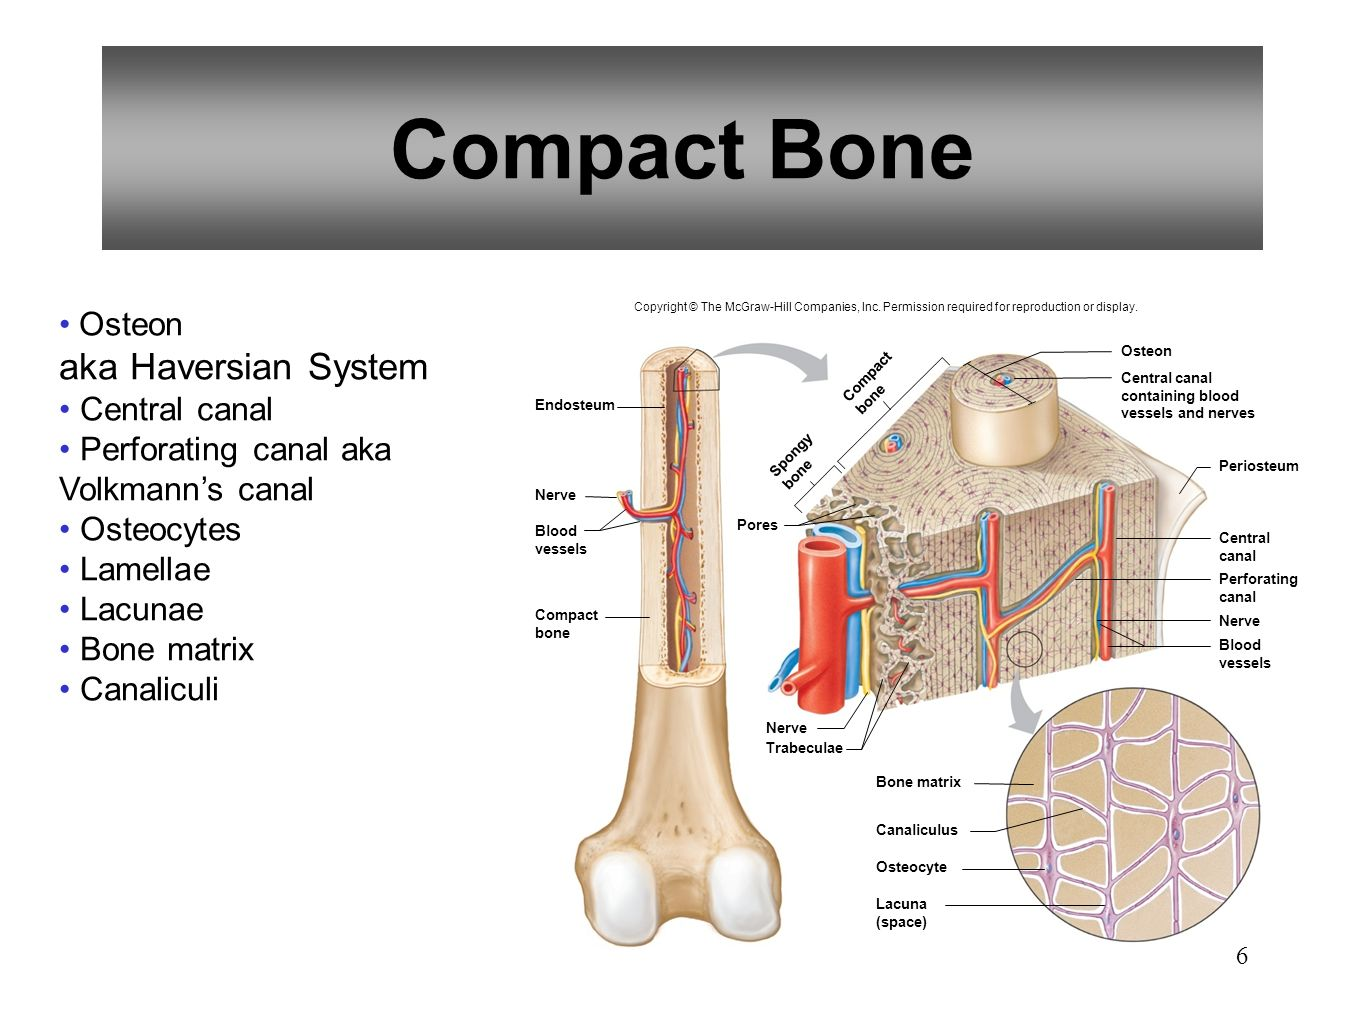 Compact Bone Pictures to Pin on Pinterest - PinsDaddy